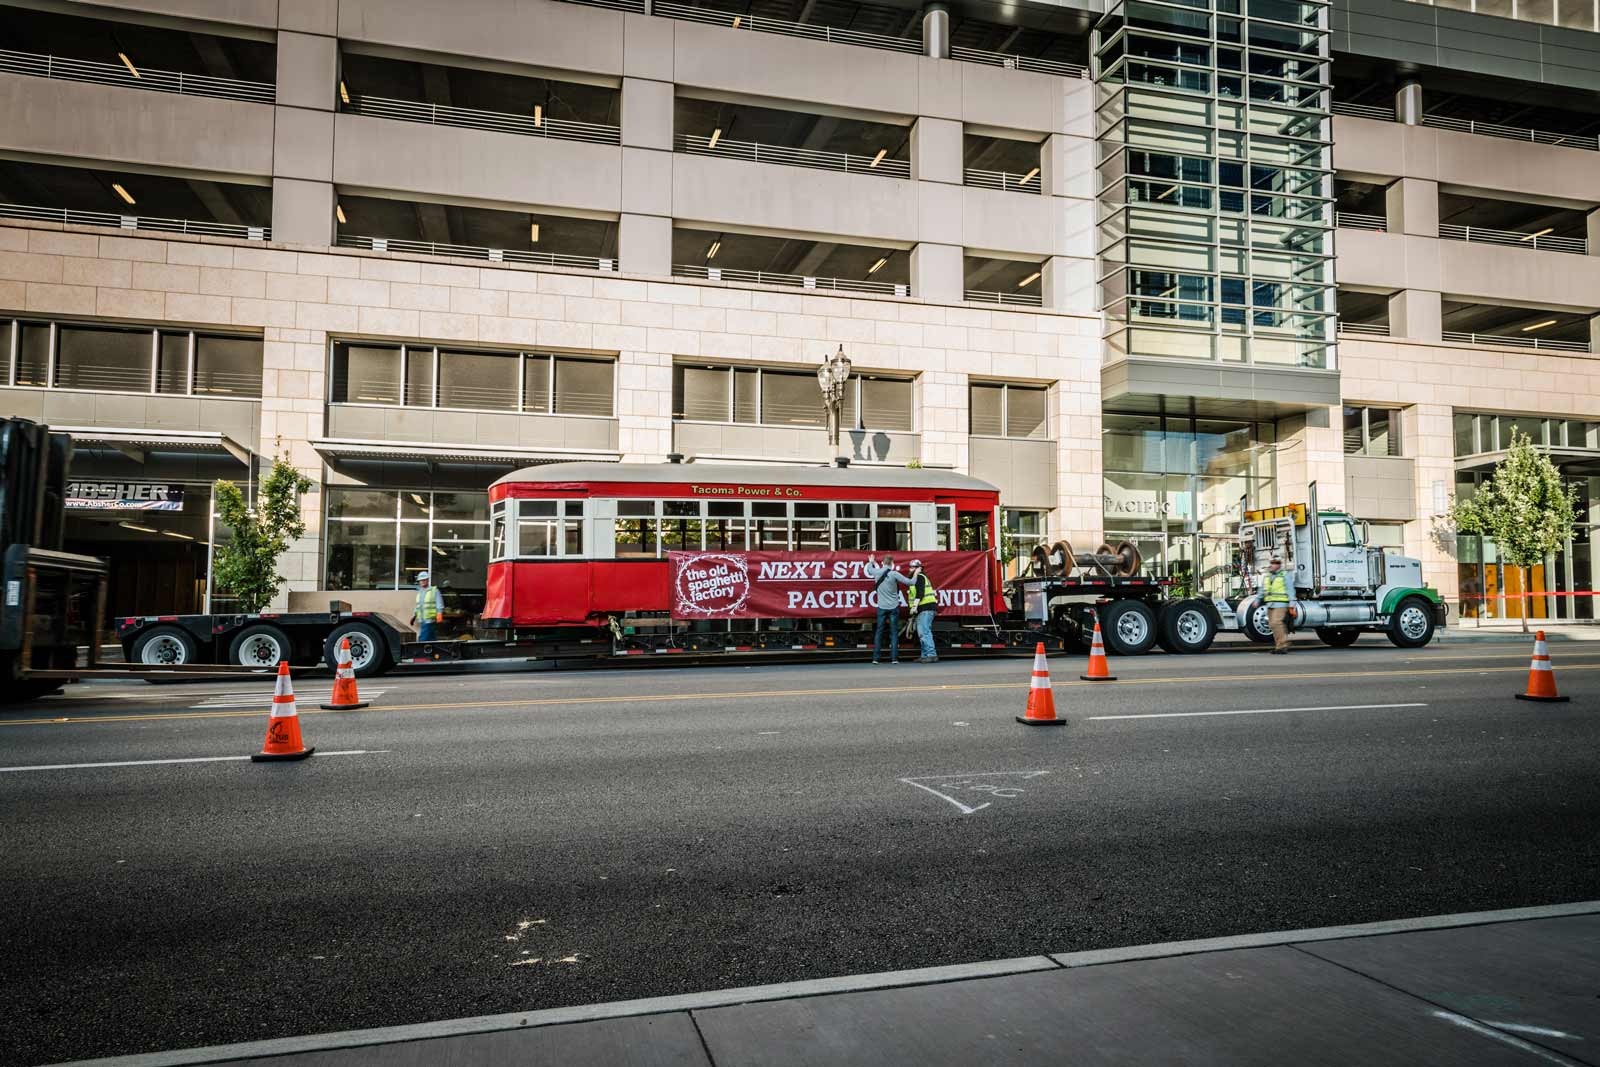 trolley car on trailer in front of downtown building